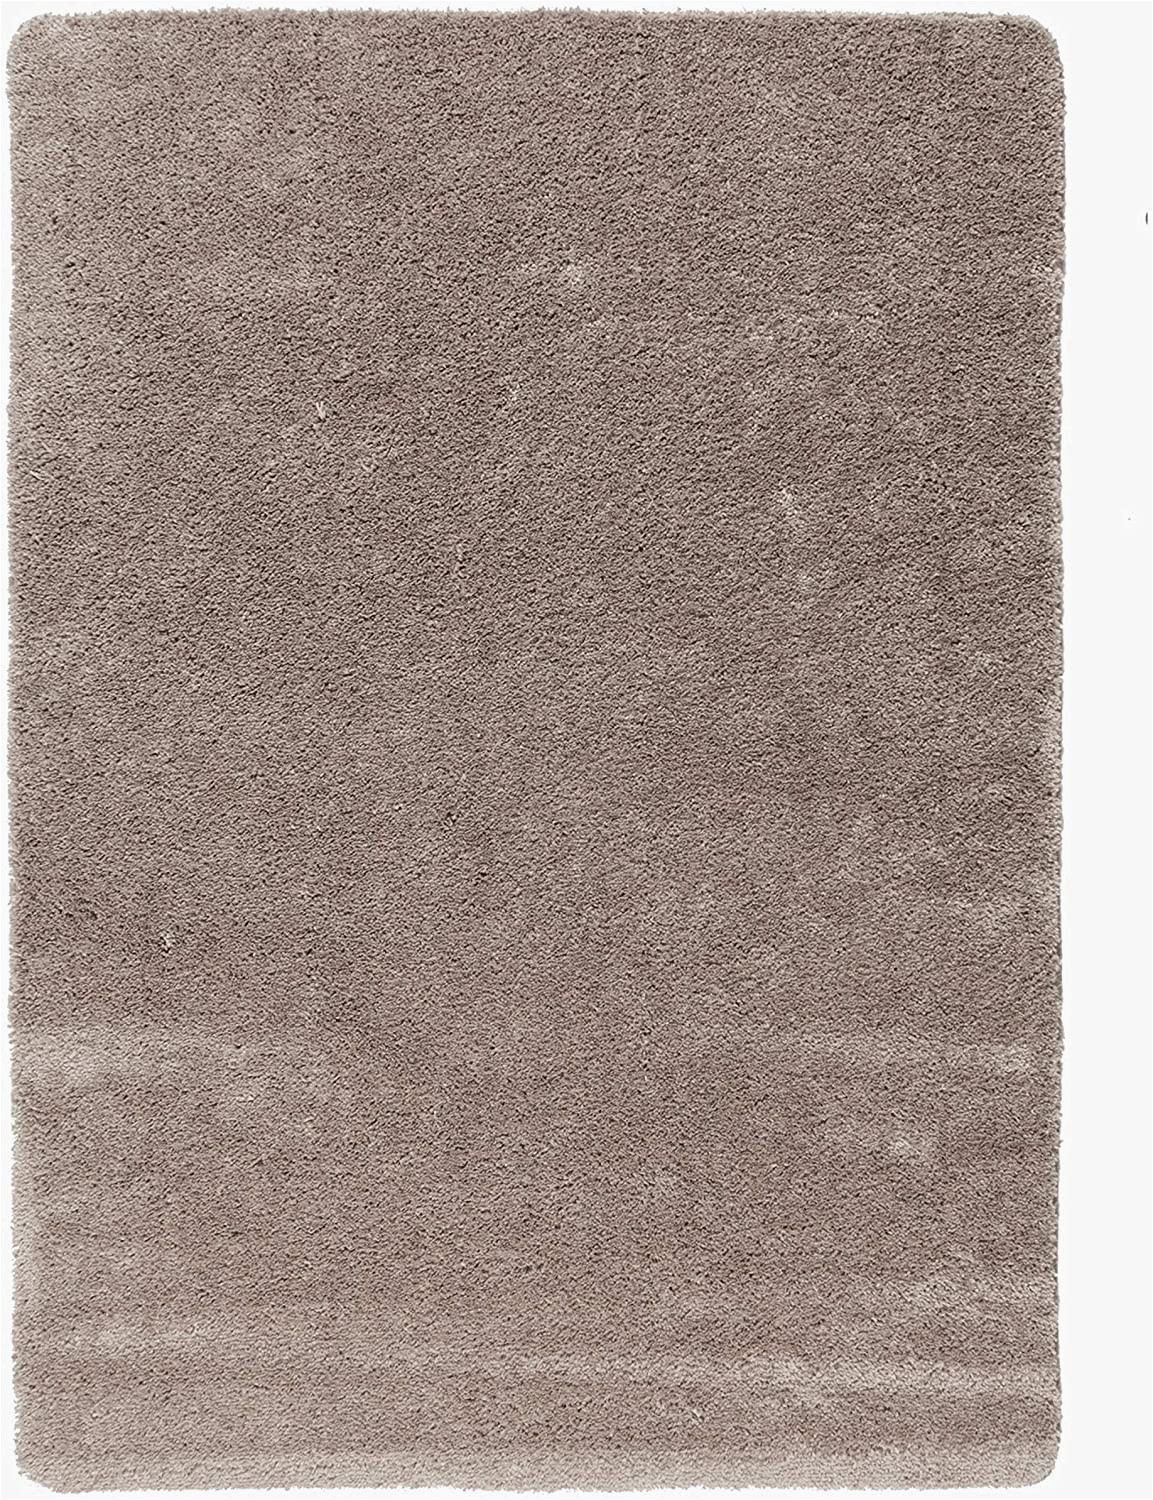 Bathroom Rugs without Latex Backing Washable soft Shaggy Non Slip Mat for Kitchen or Bathroom